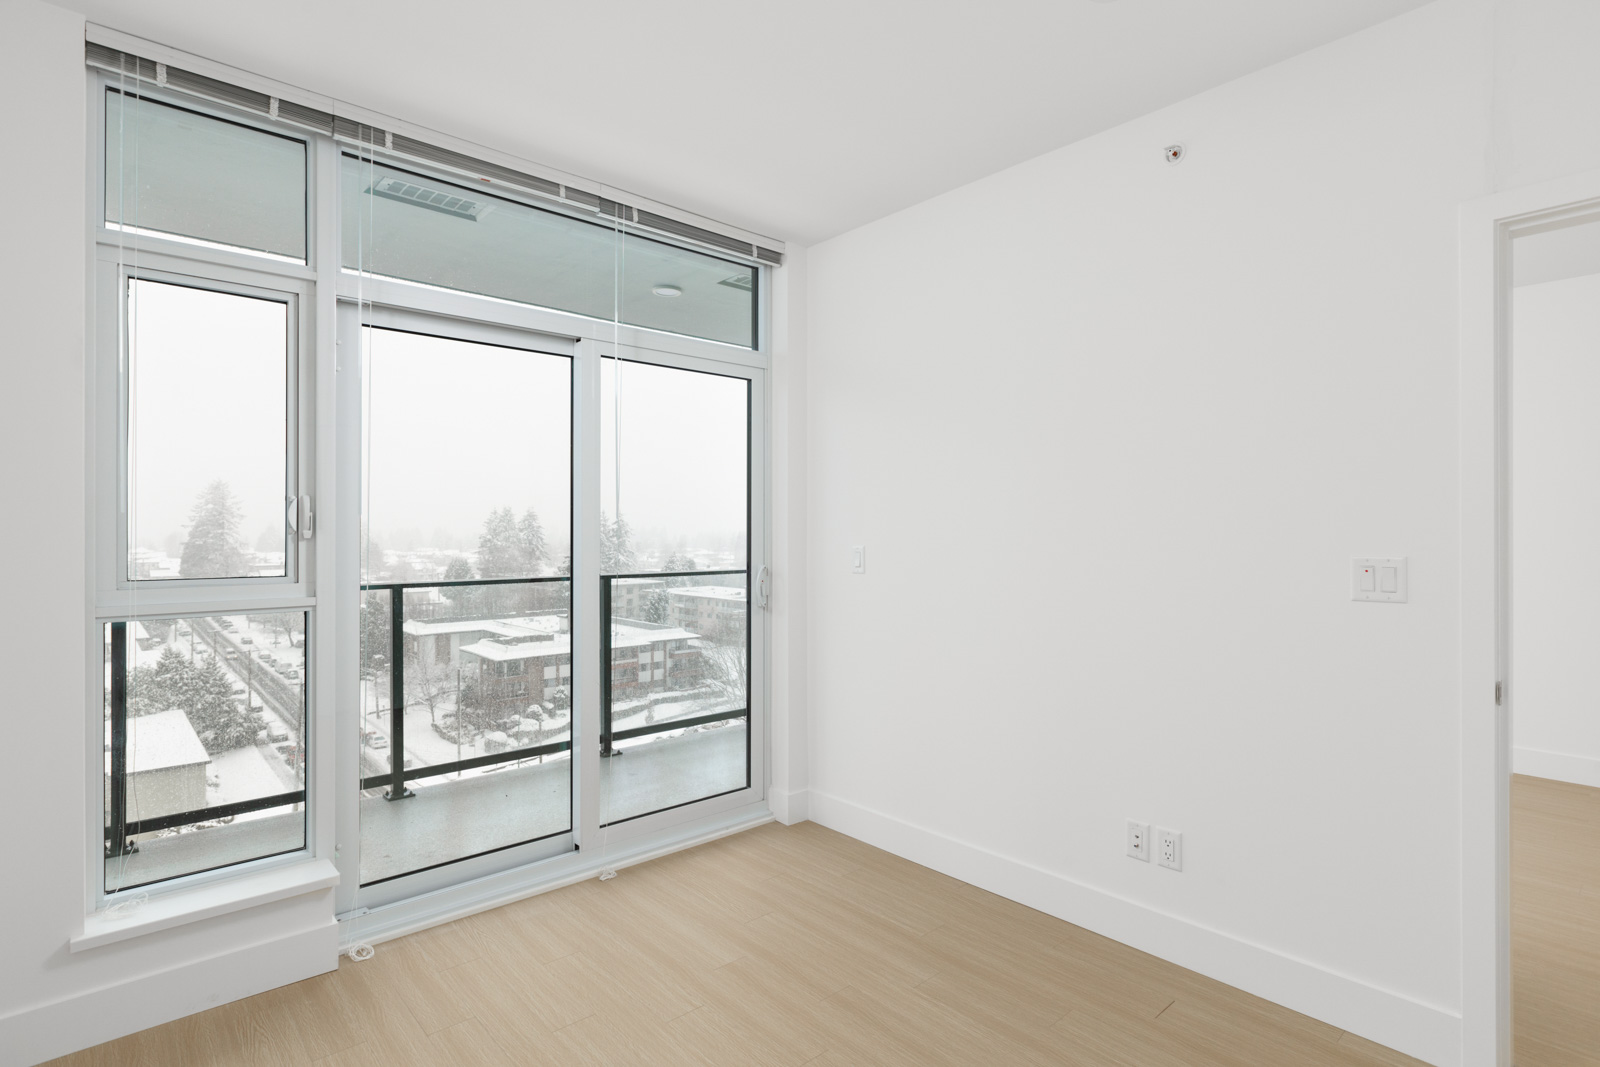 looking out floor to ceiling windows on left and while wall on right in empty brand new condo managed by birds nest properties at kings crossing in burnaby